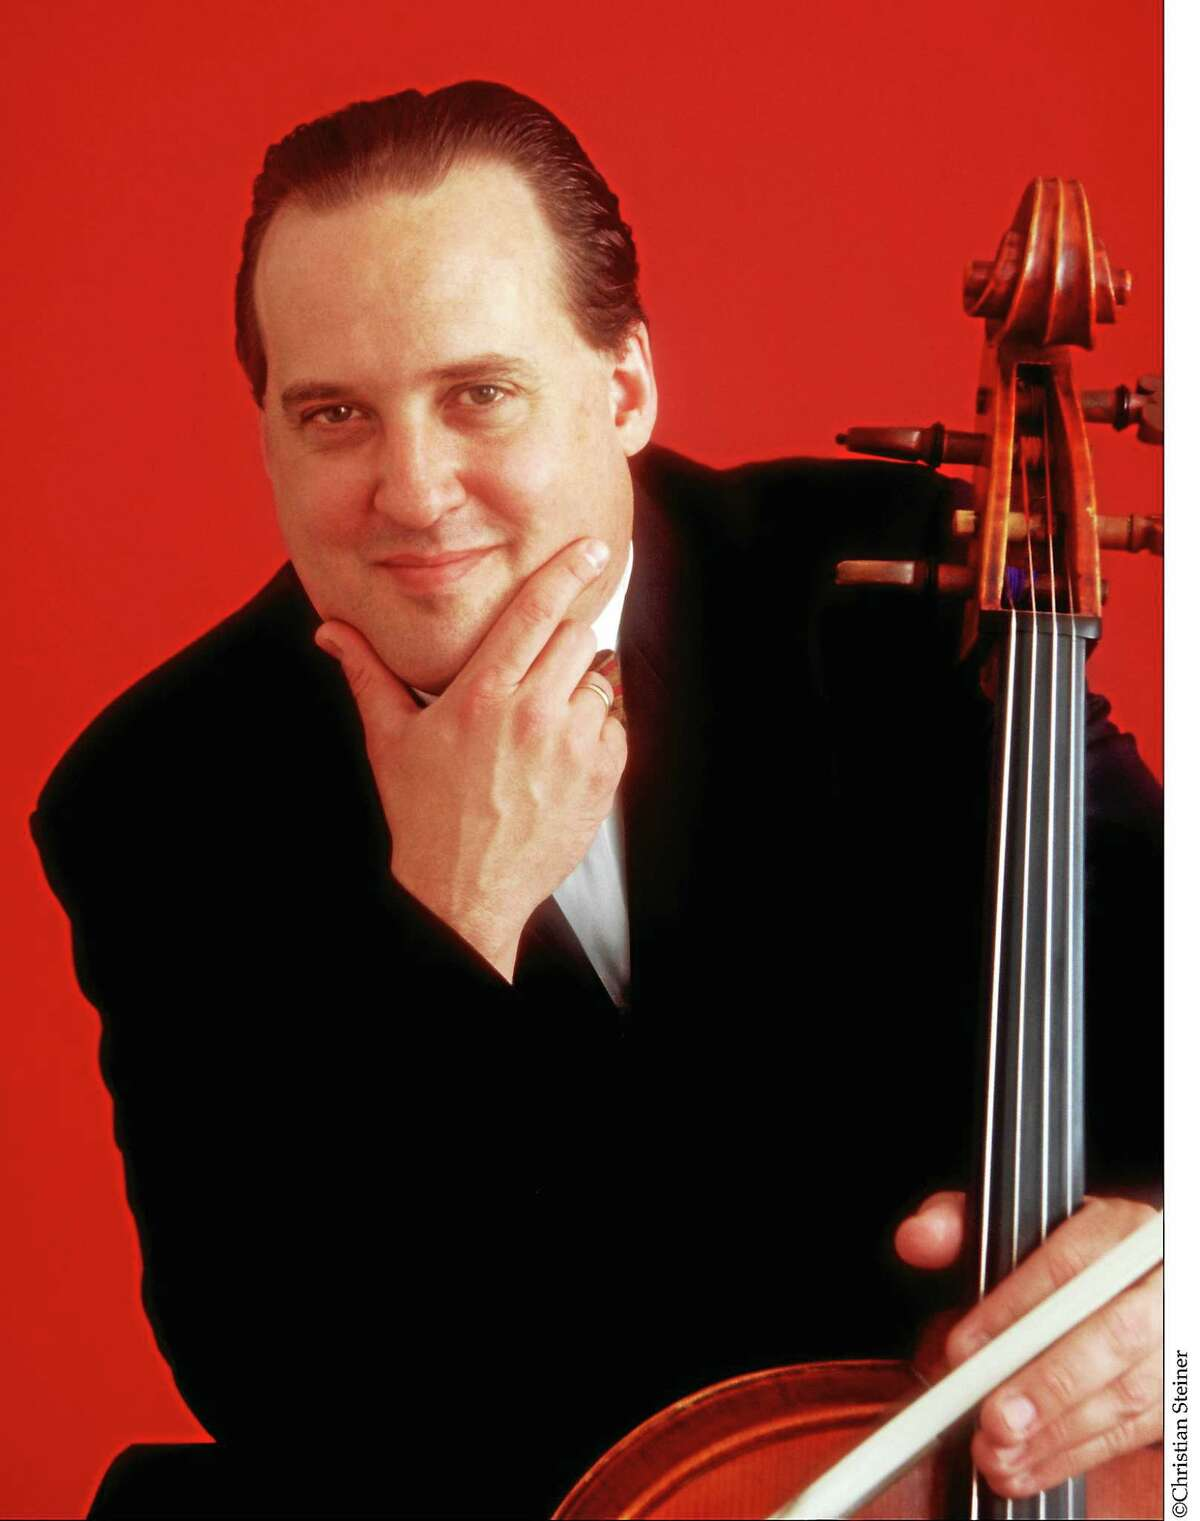 Cellist and artistic director Ronald Thomas will perform in three of the four programs presented by Chestnut Hill Concerts this August at The Kate in Old Saybrook.